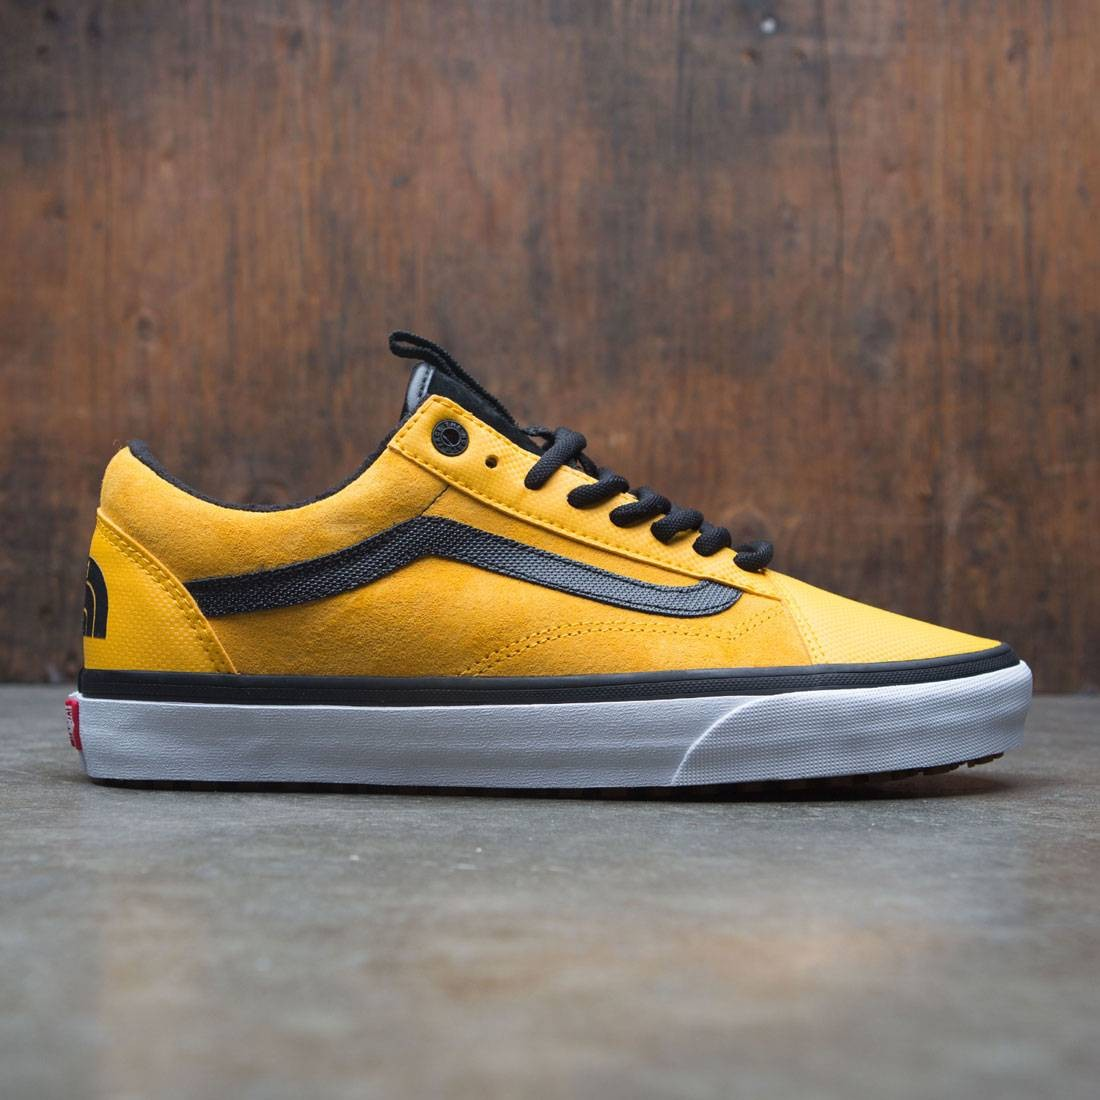 19f5e82790f95d Vans x The North Face Men Old Skool MTE DX - MTE yellow black